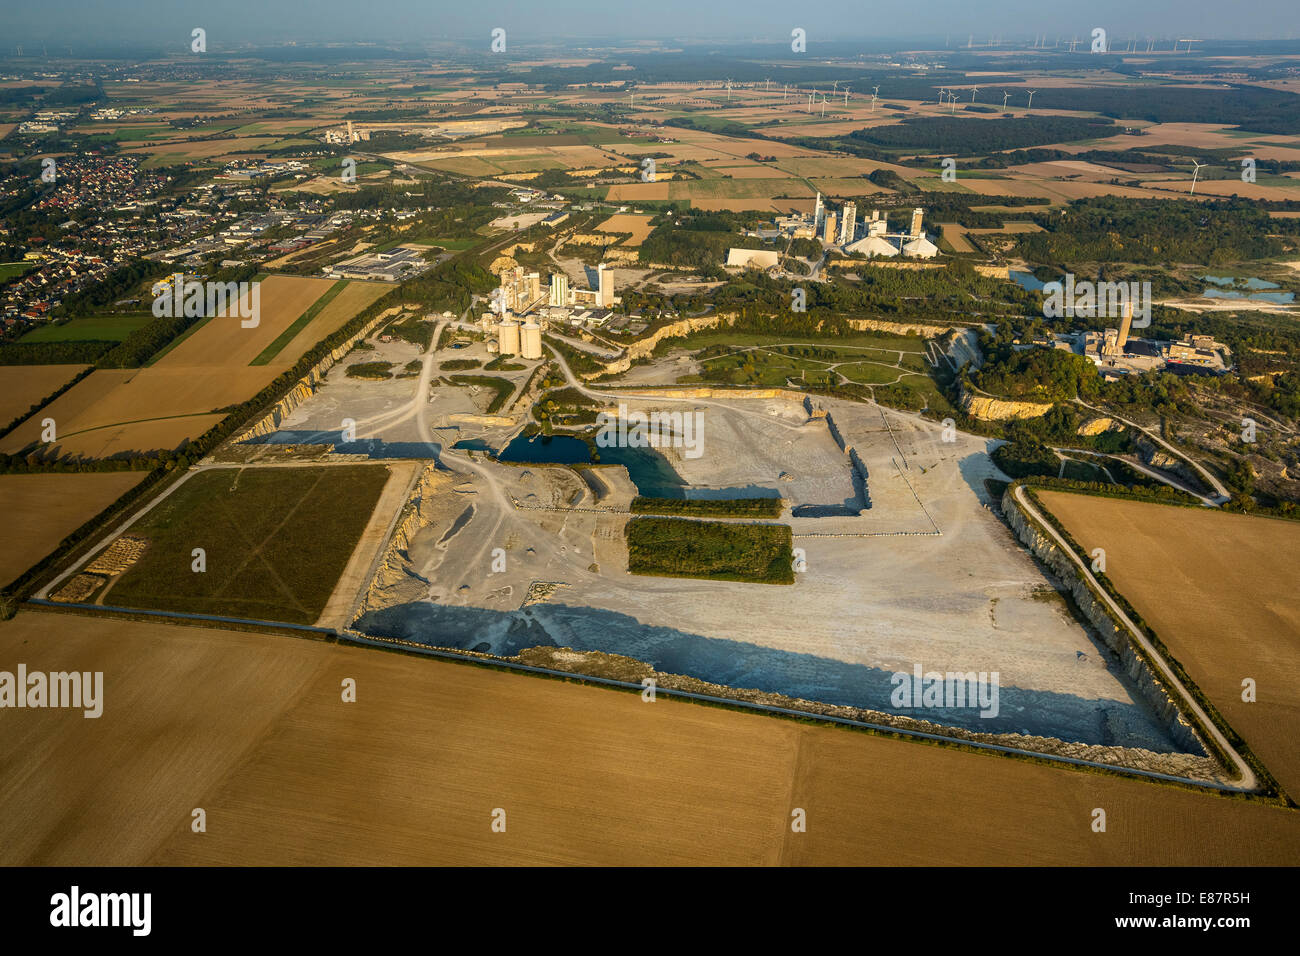 Aerial view, quarries with a health trail, Geseke, North Rhine-Westphalia, Germany - Stock Image